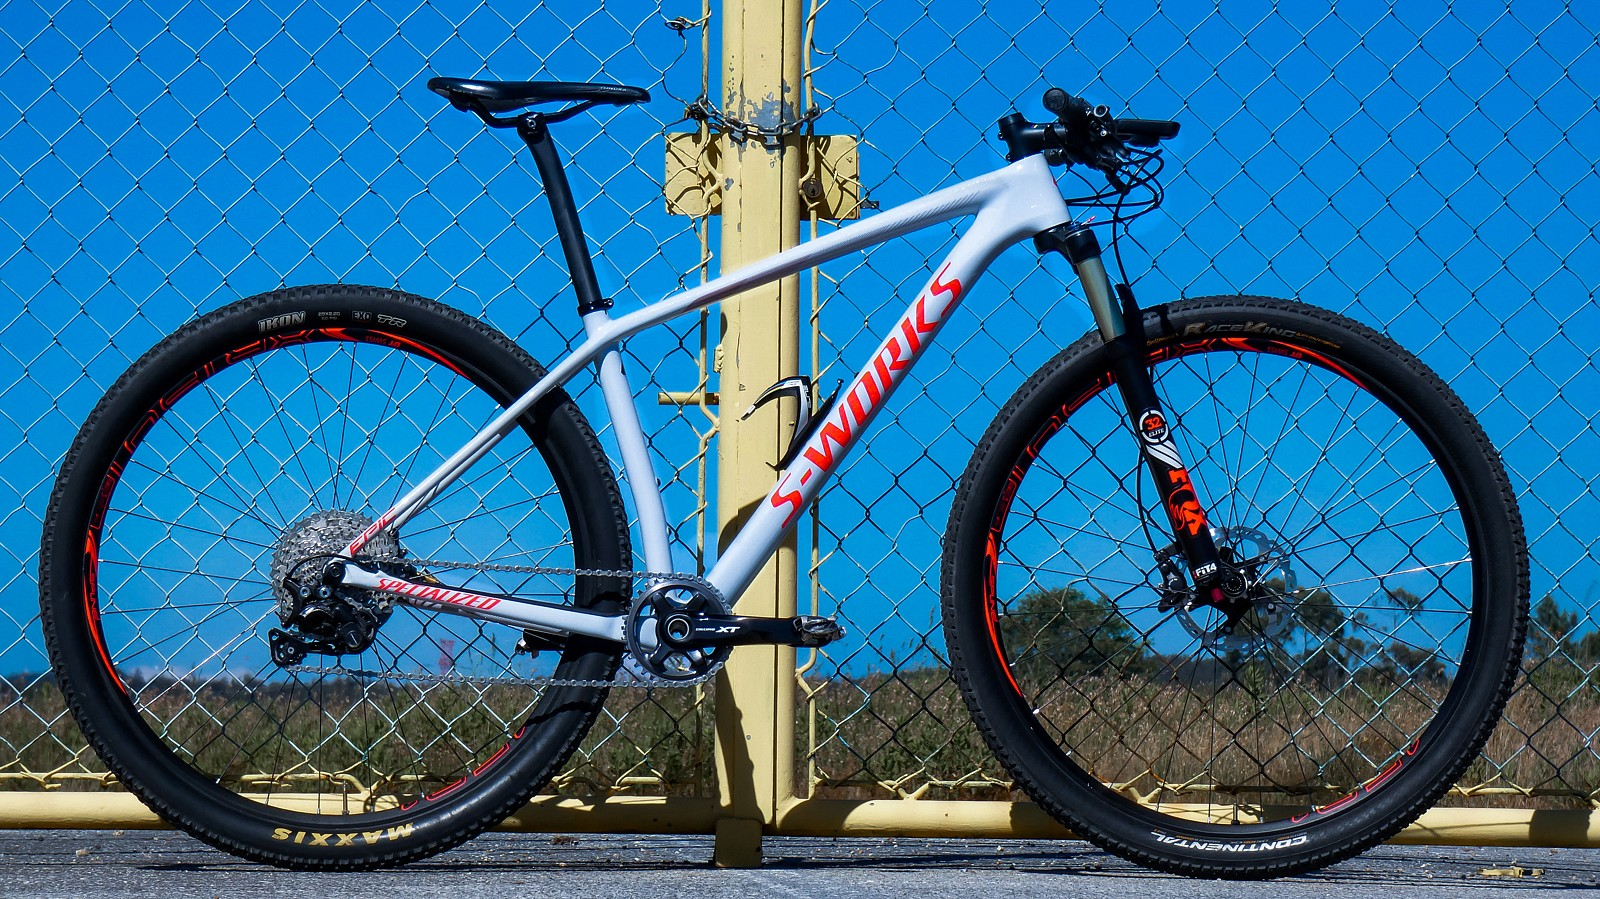 Front View - andre.f.a.silva - Mountain Biking Pictures - Vital MTB